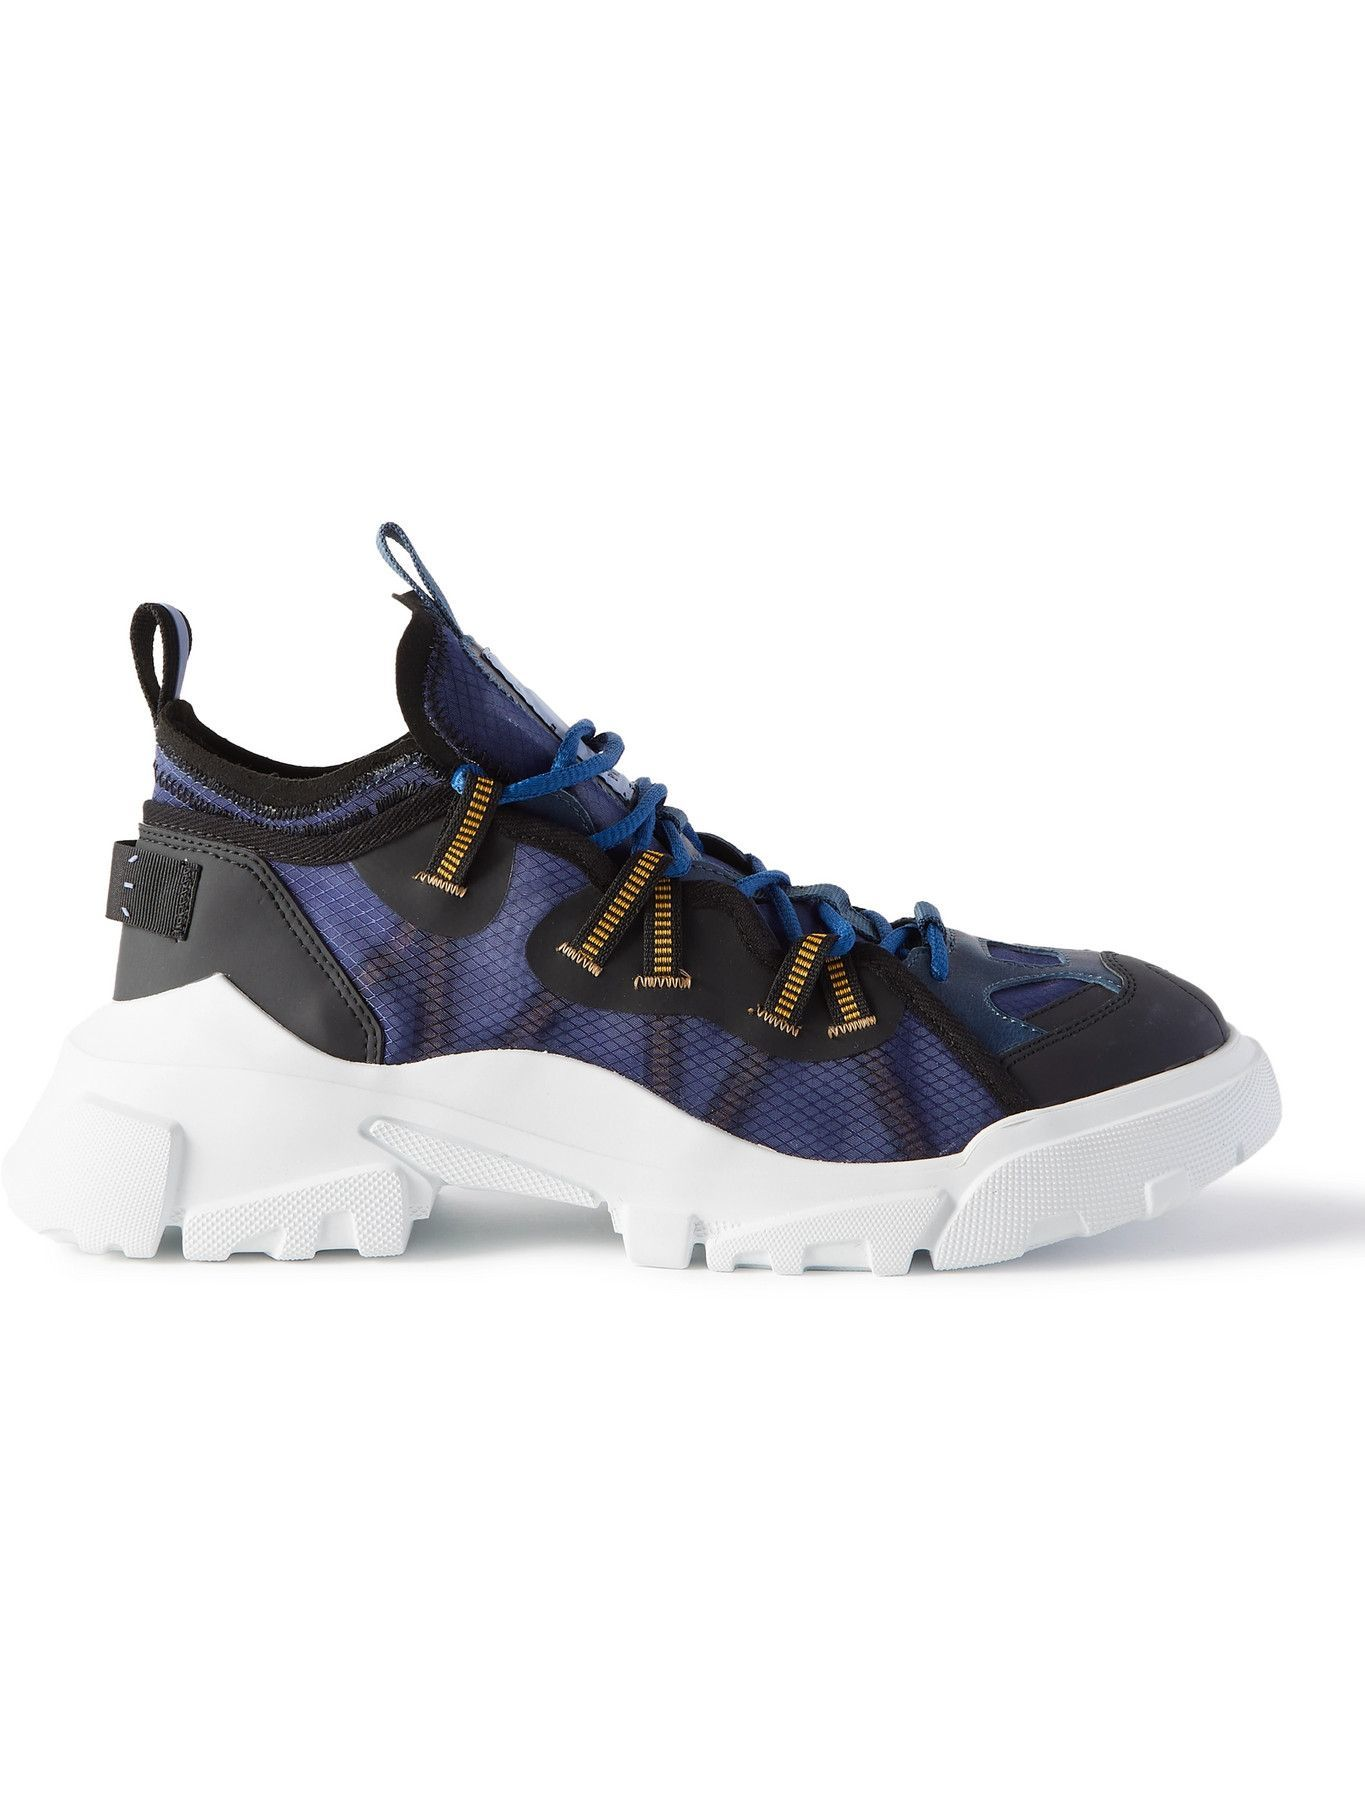 Photo: MCQ - Breathe BR-7 Orbyt Descender Leather-Trimmed Ripstop Sneakers - Black